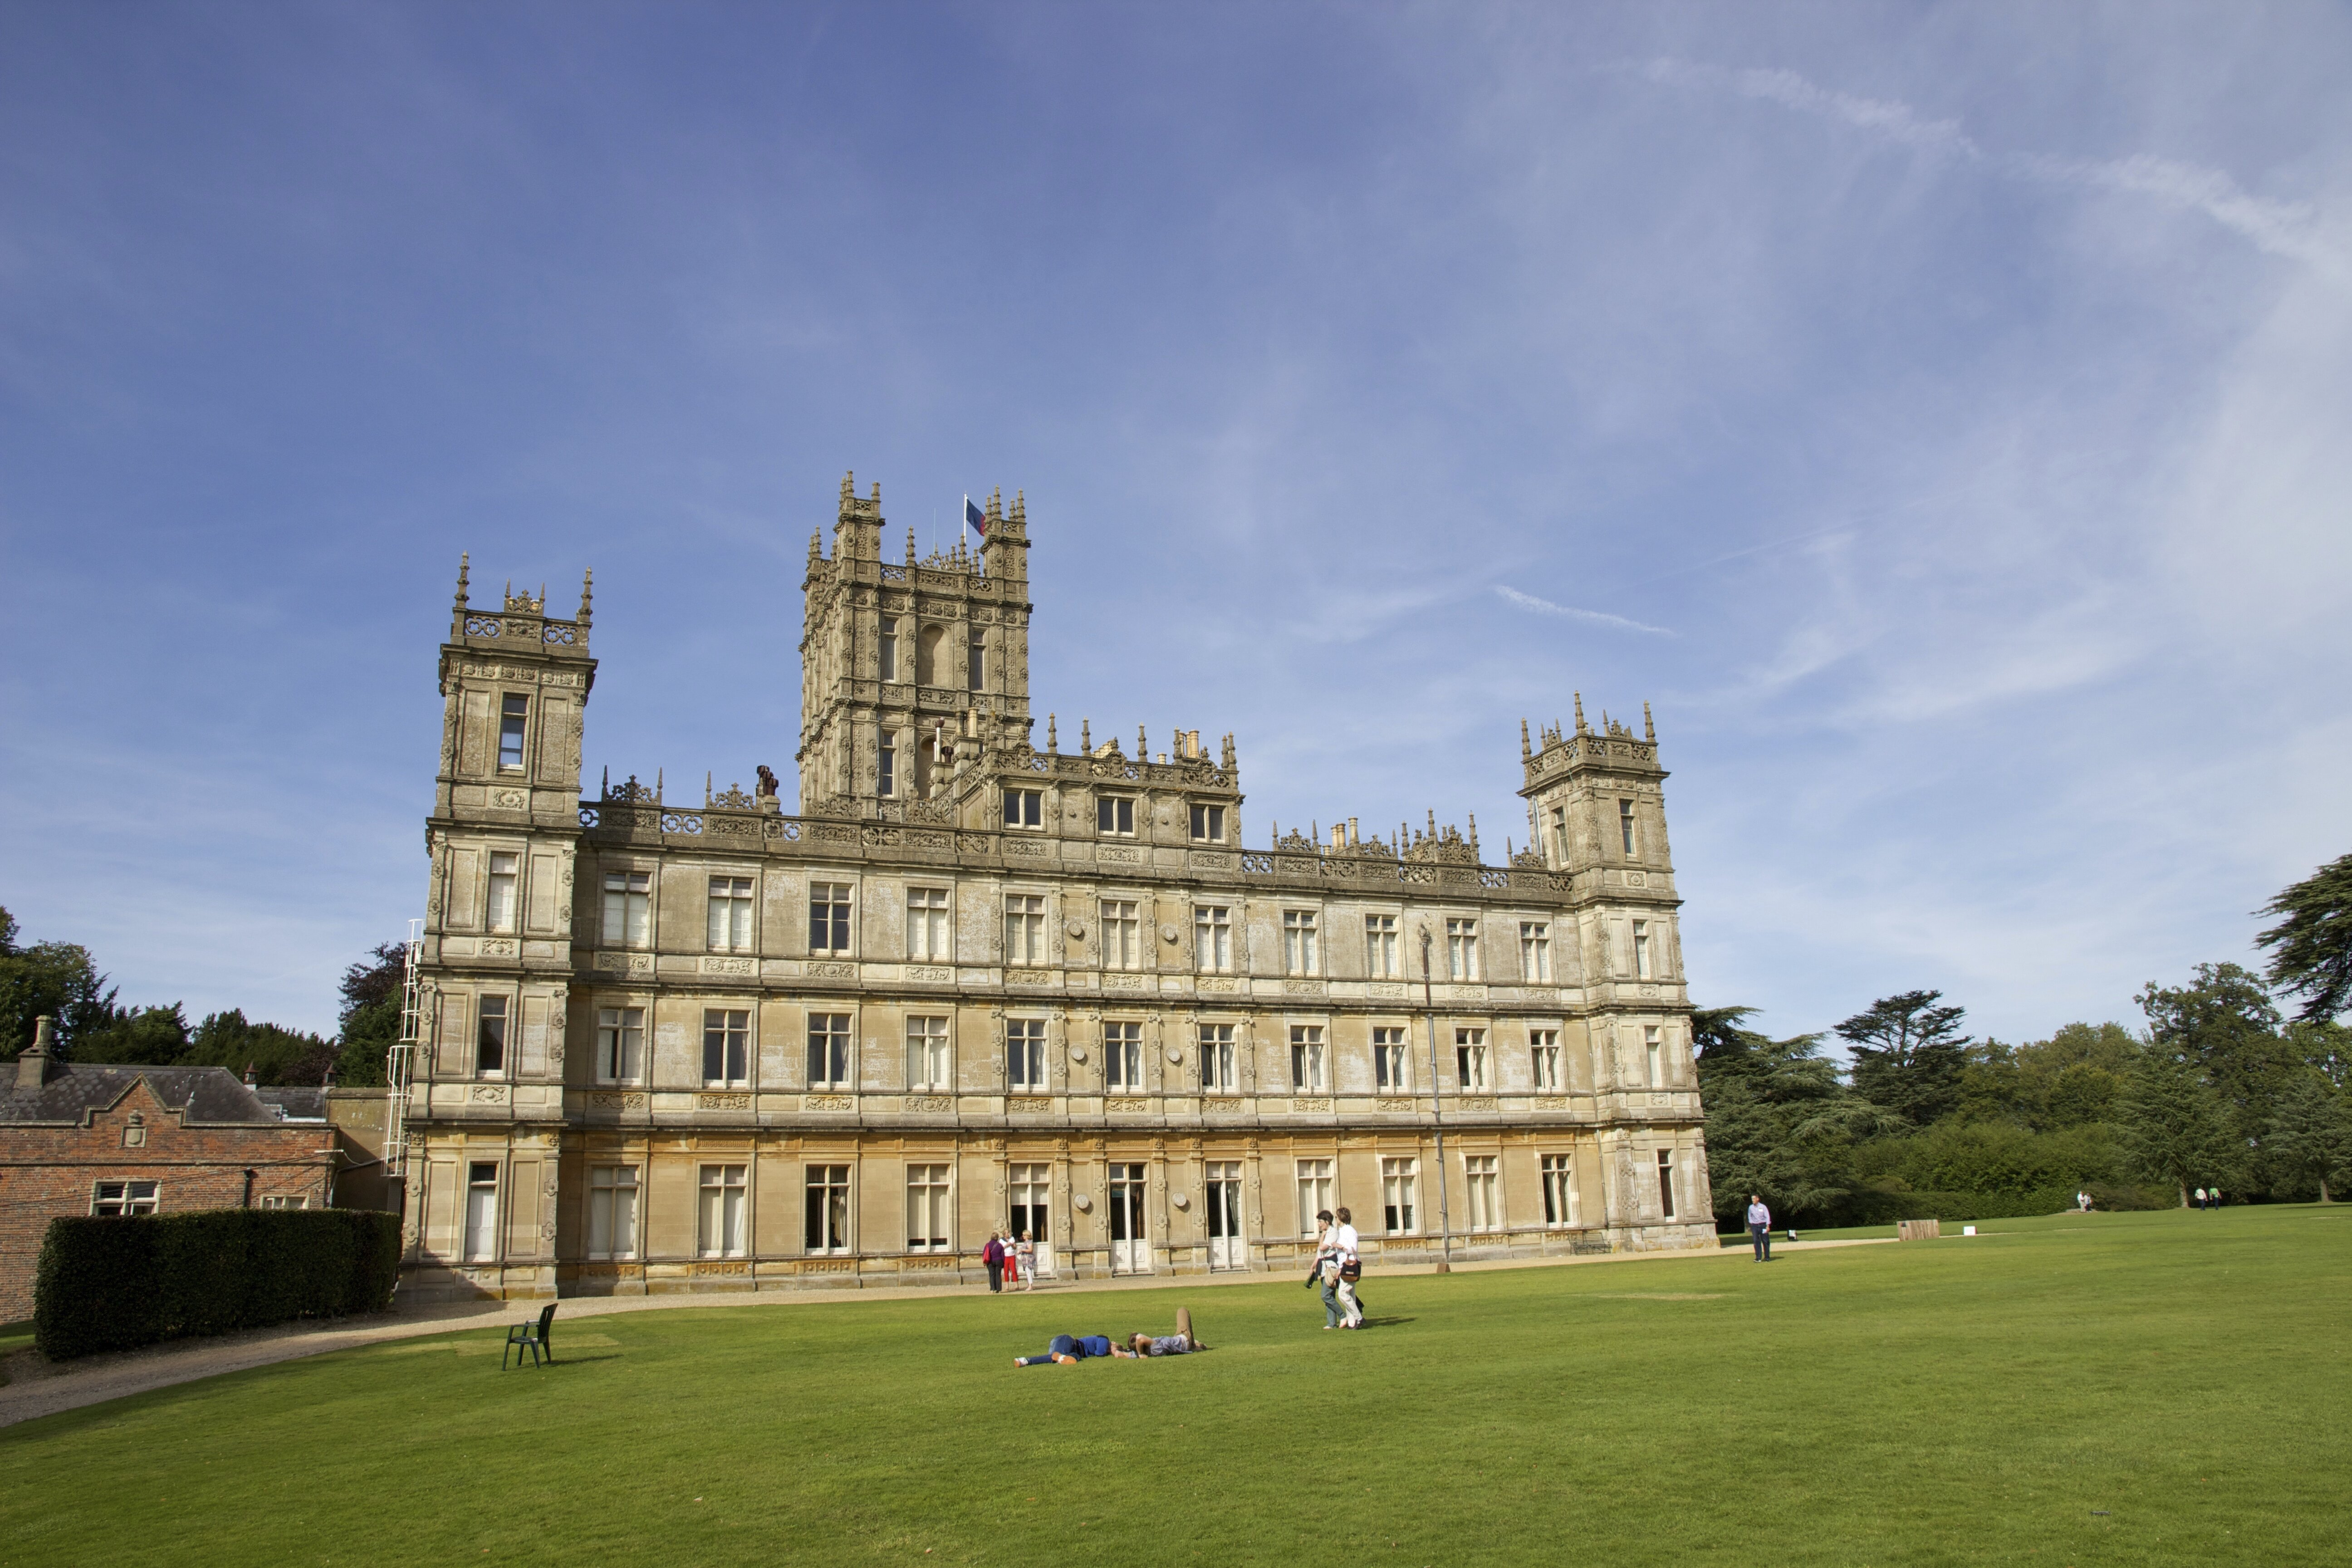 Highclere castle castelo de downton abbey mapa de londres - Chateau de downton abbey ...